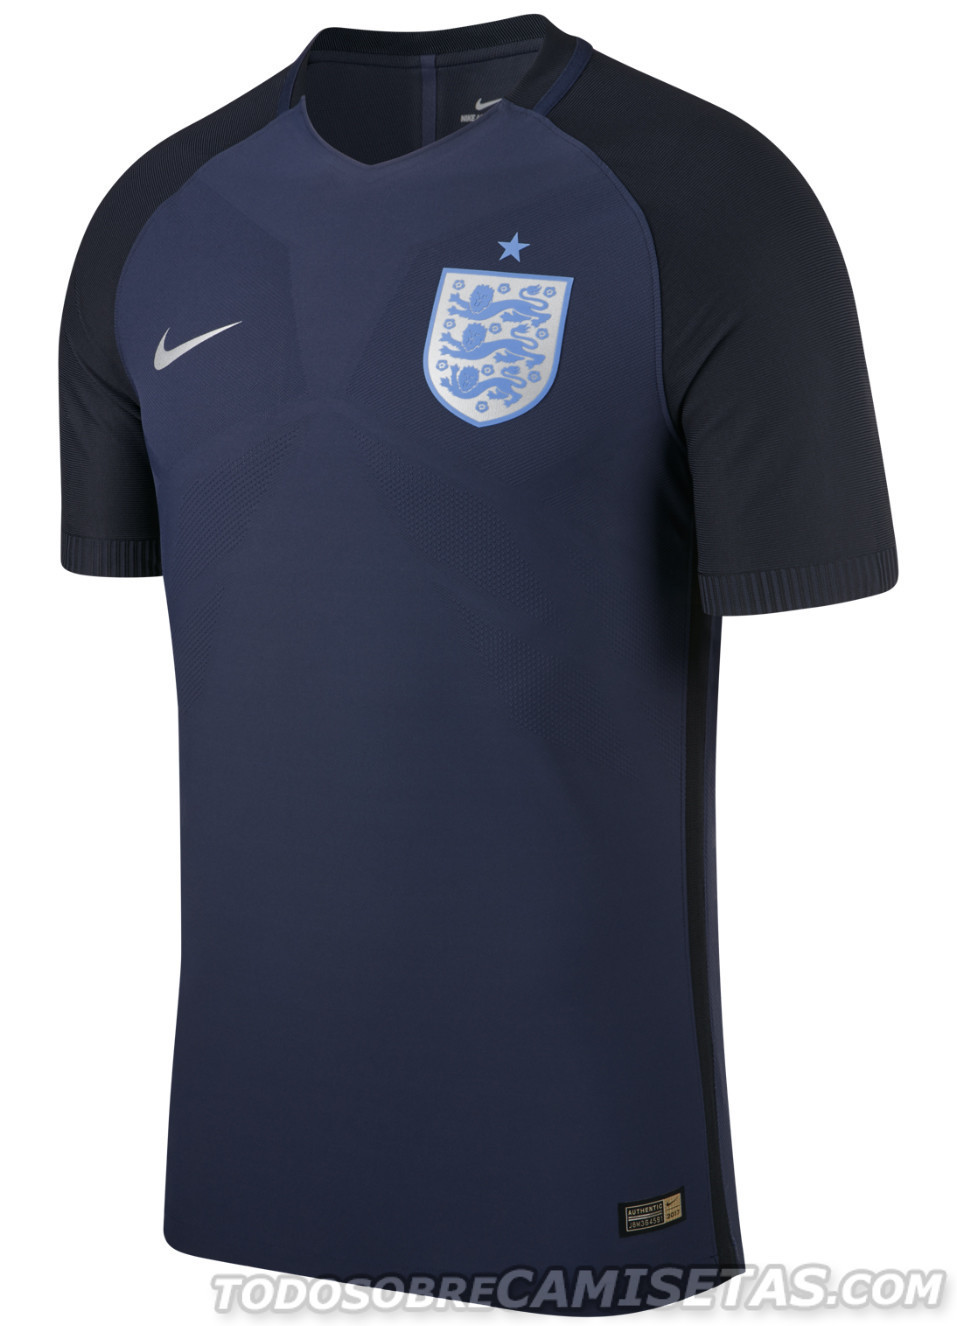 England-2017-NIKE-new-away-kit-2.jpg